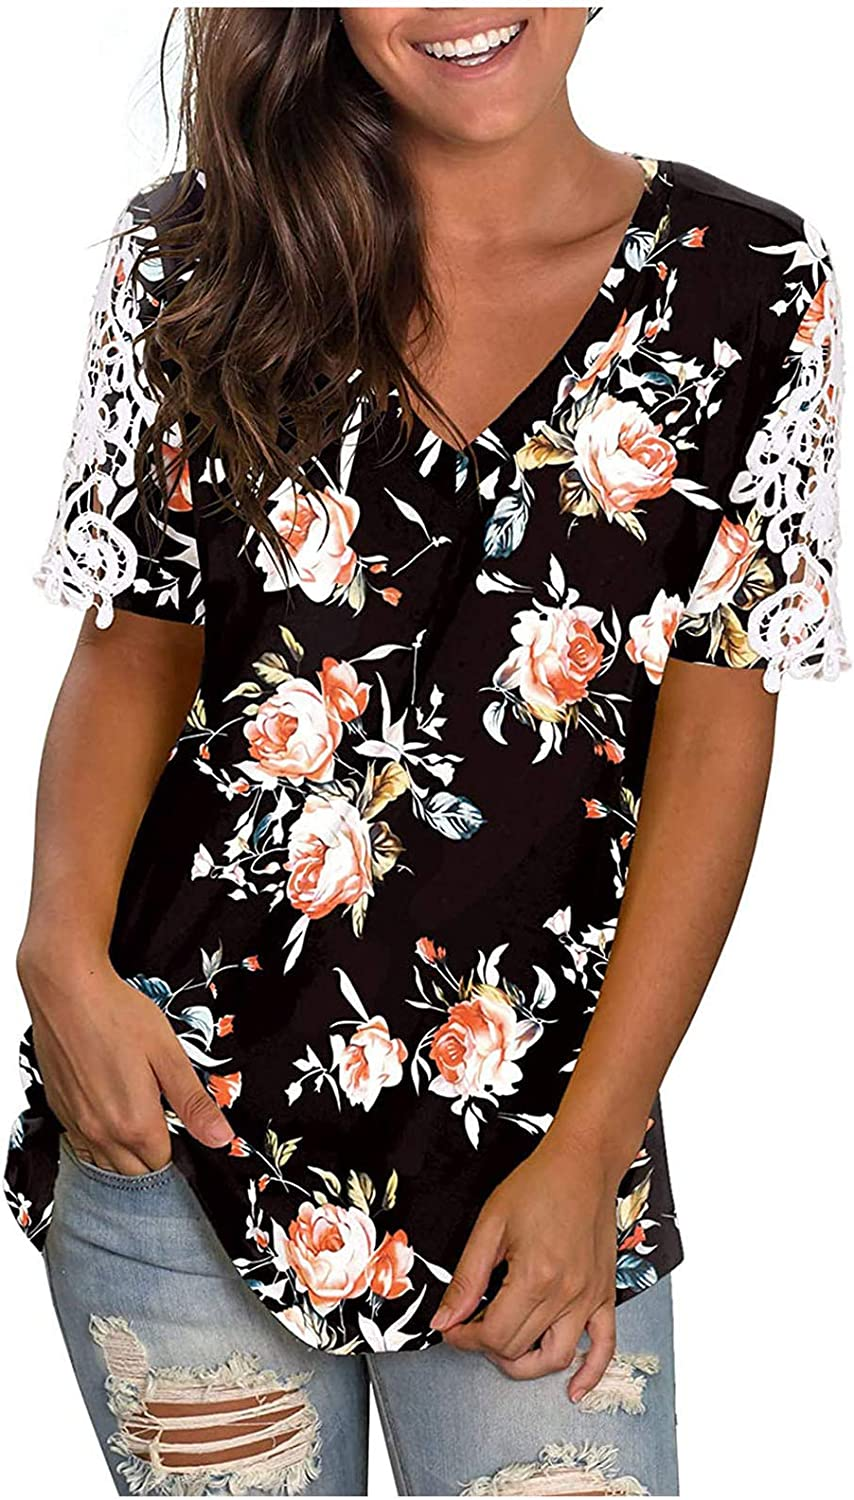 Womens Summer Tops,Women Casual T-Shirt V-Neck Shirts Printed Hollow Out Strap Tops Short Sleeve Blouse